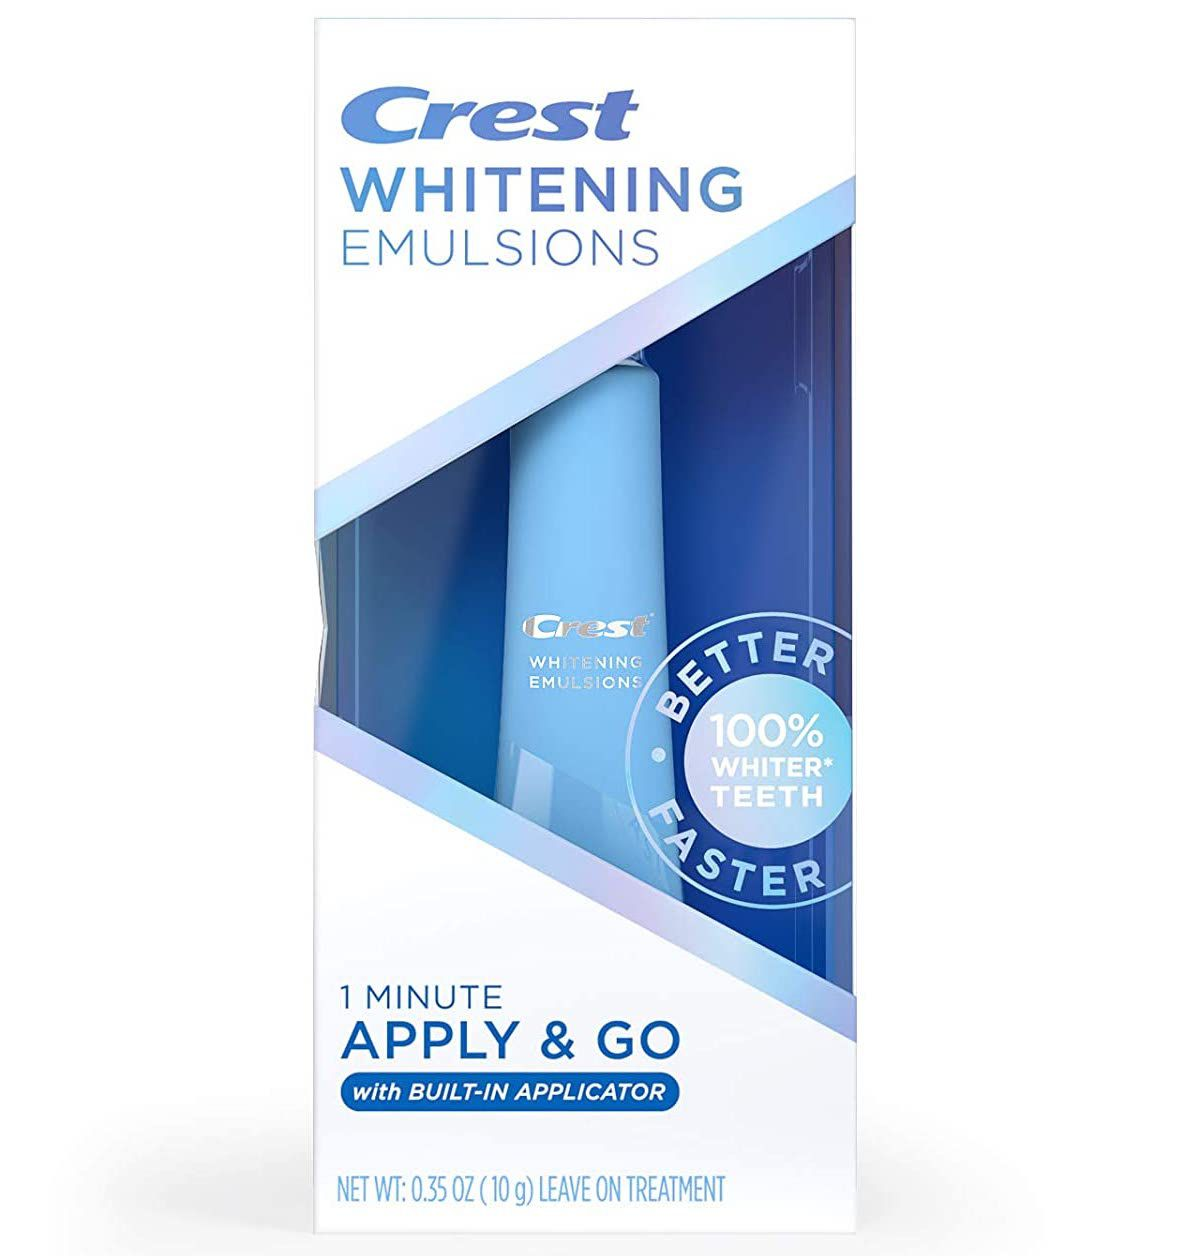 Crest Whitening Emulsions Leave-on Teeth Whitening with Built-in Applicator